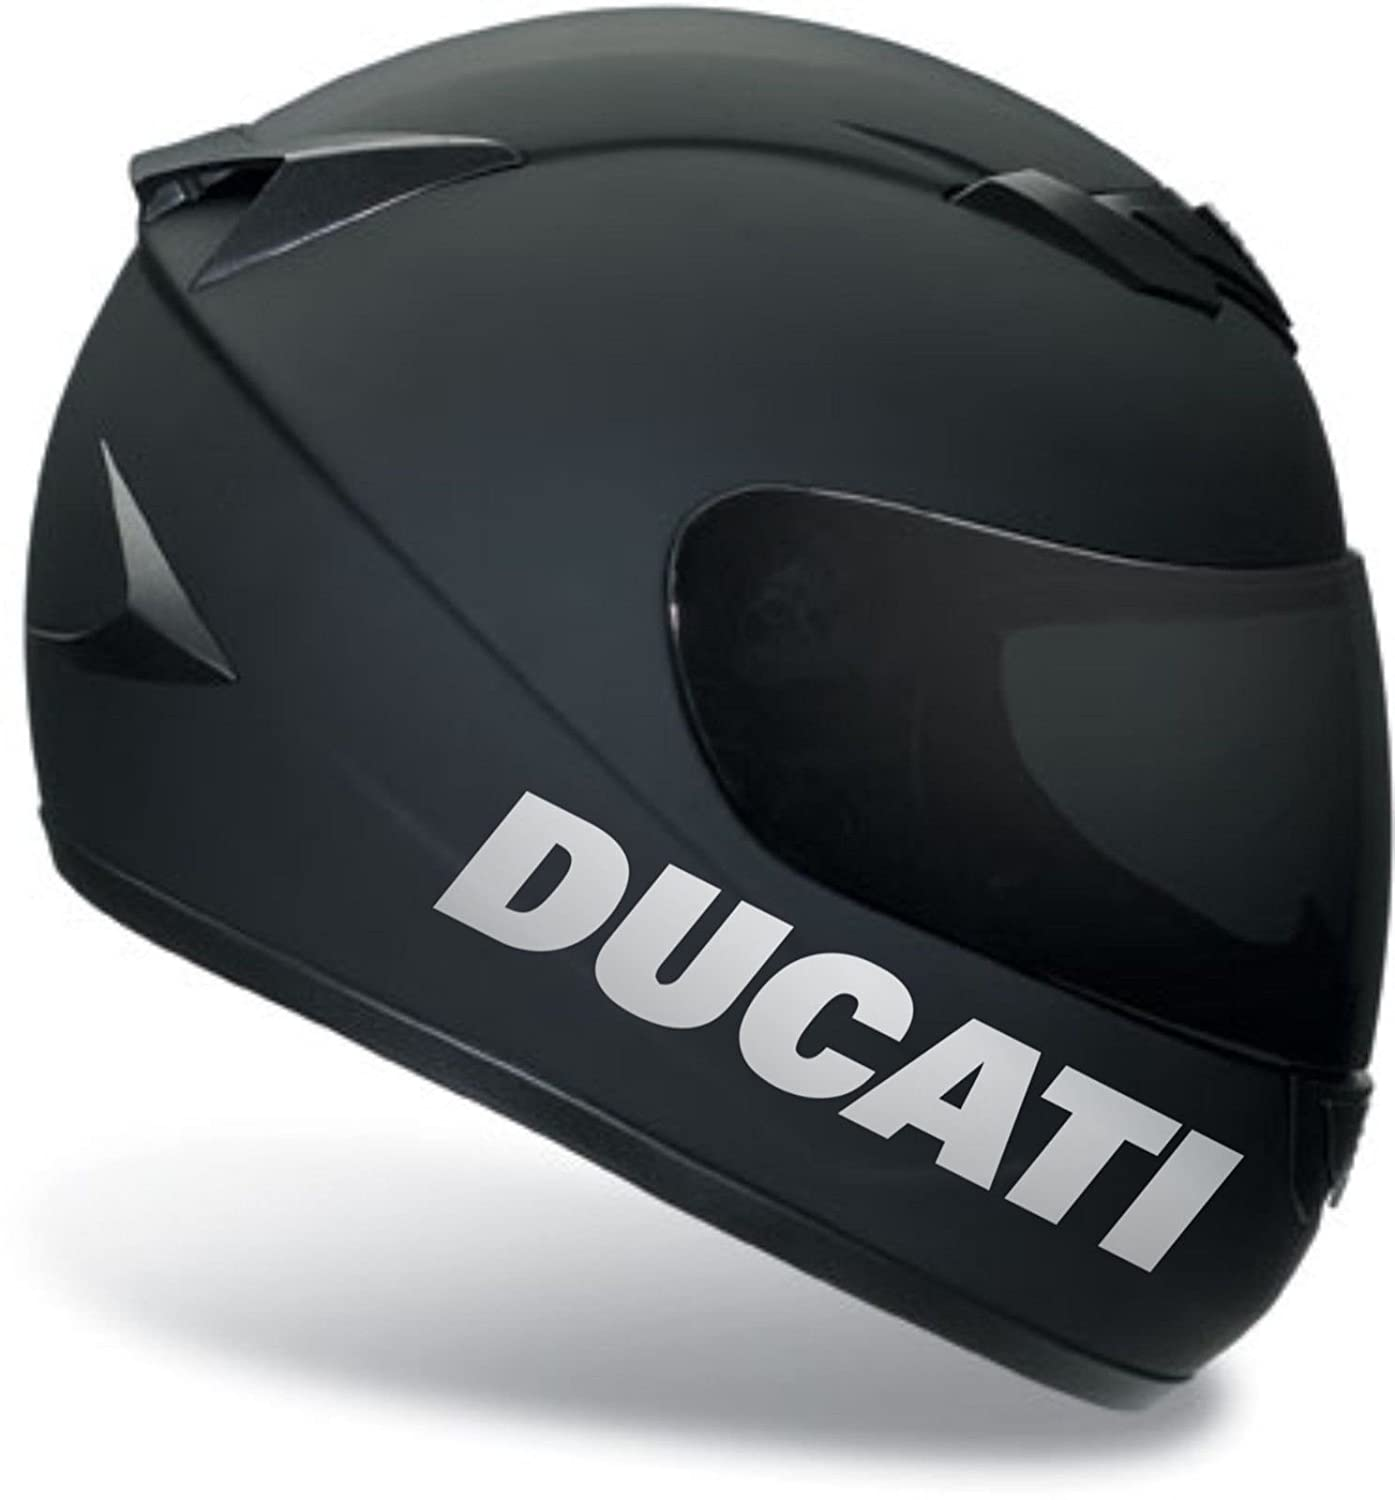 X Ducati Sticker For Helmet Decal Motorcycle Decal Sticker Buy - Motorcycle helmet decals kits